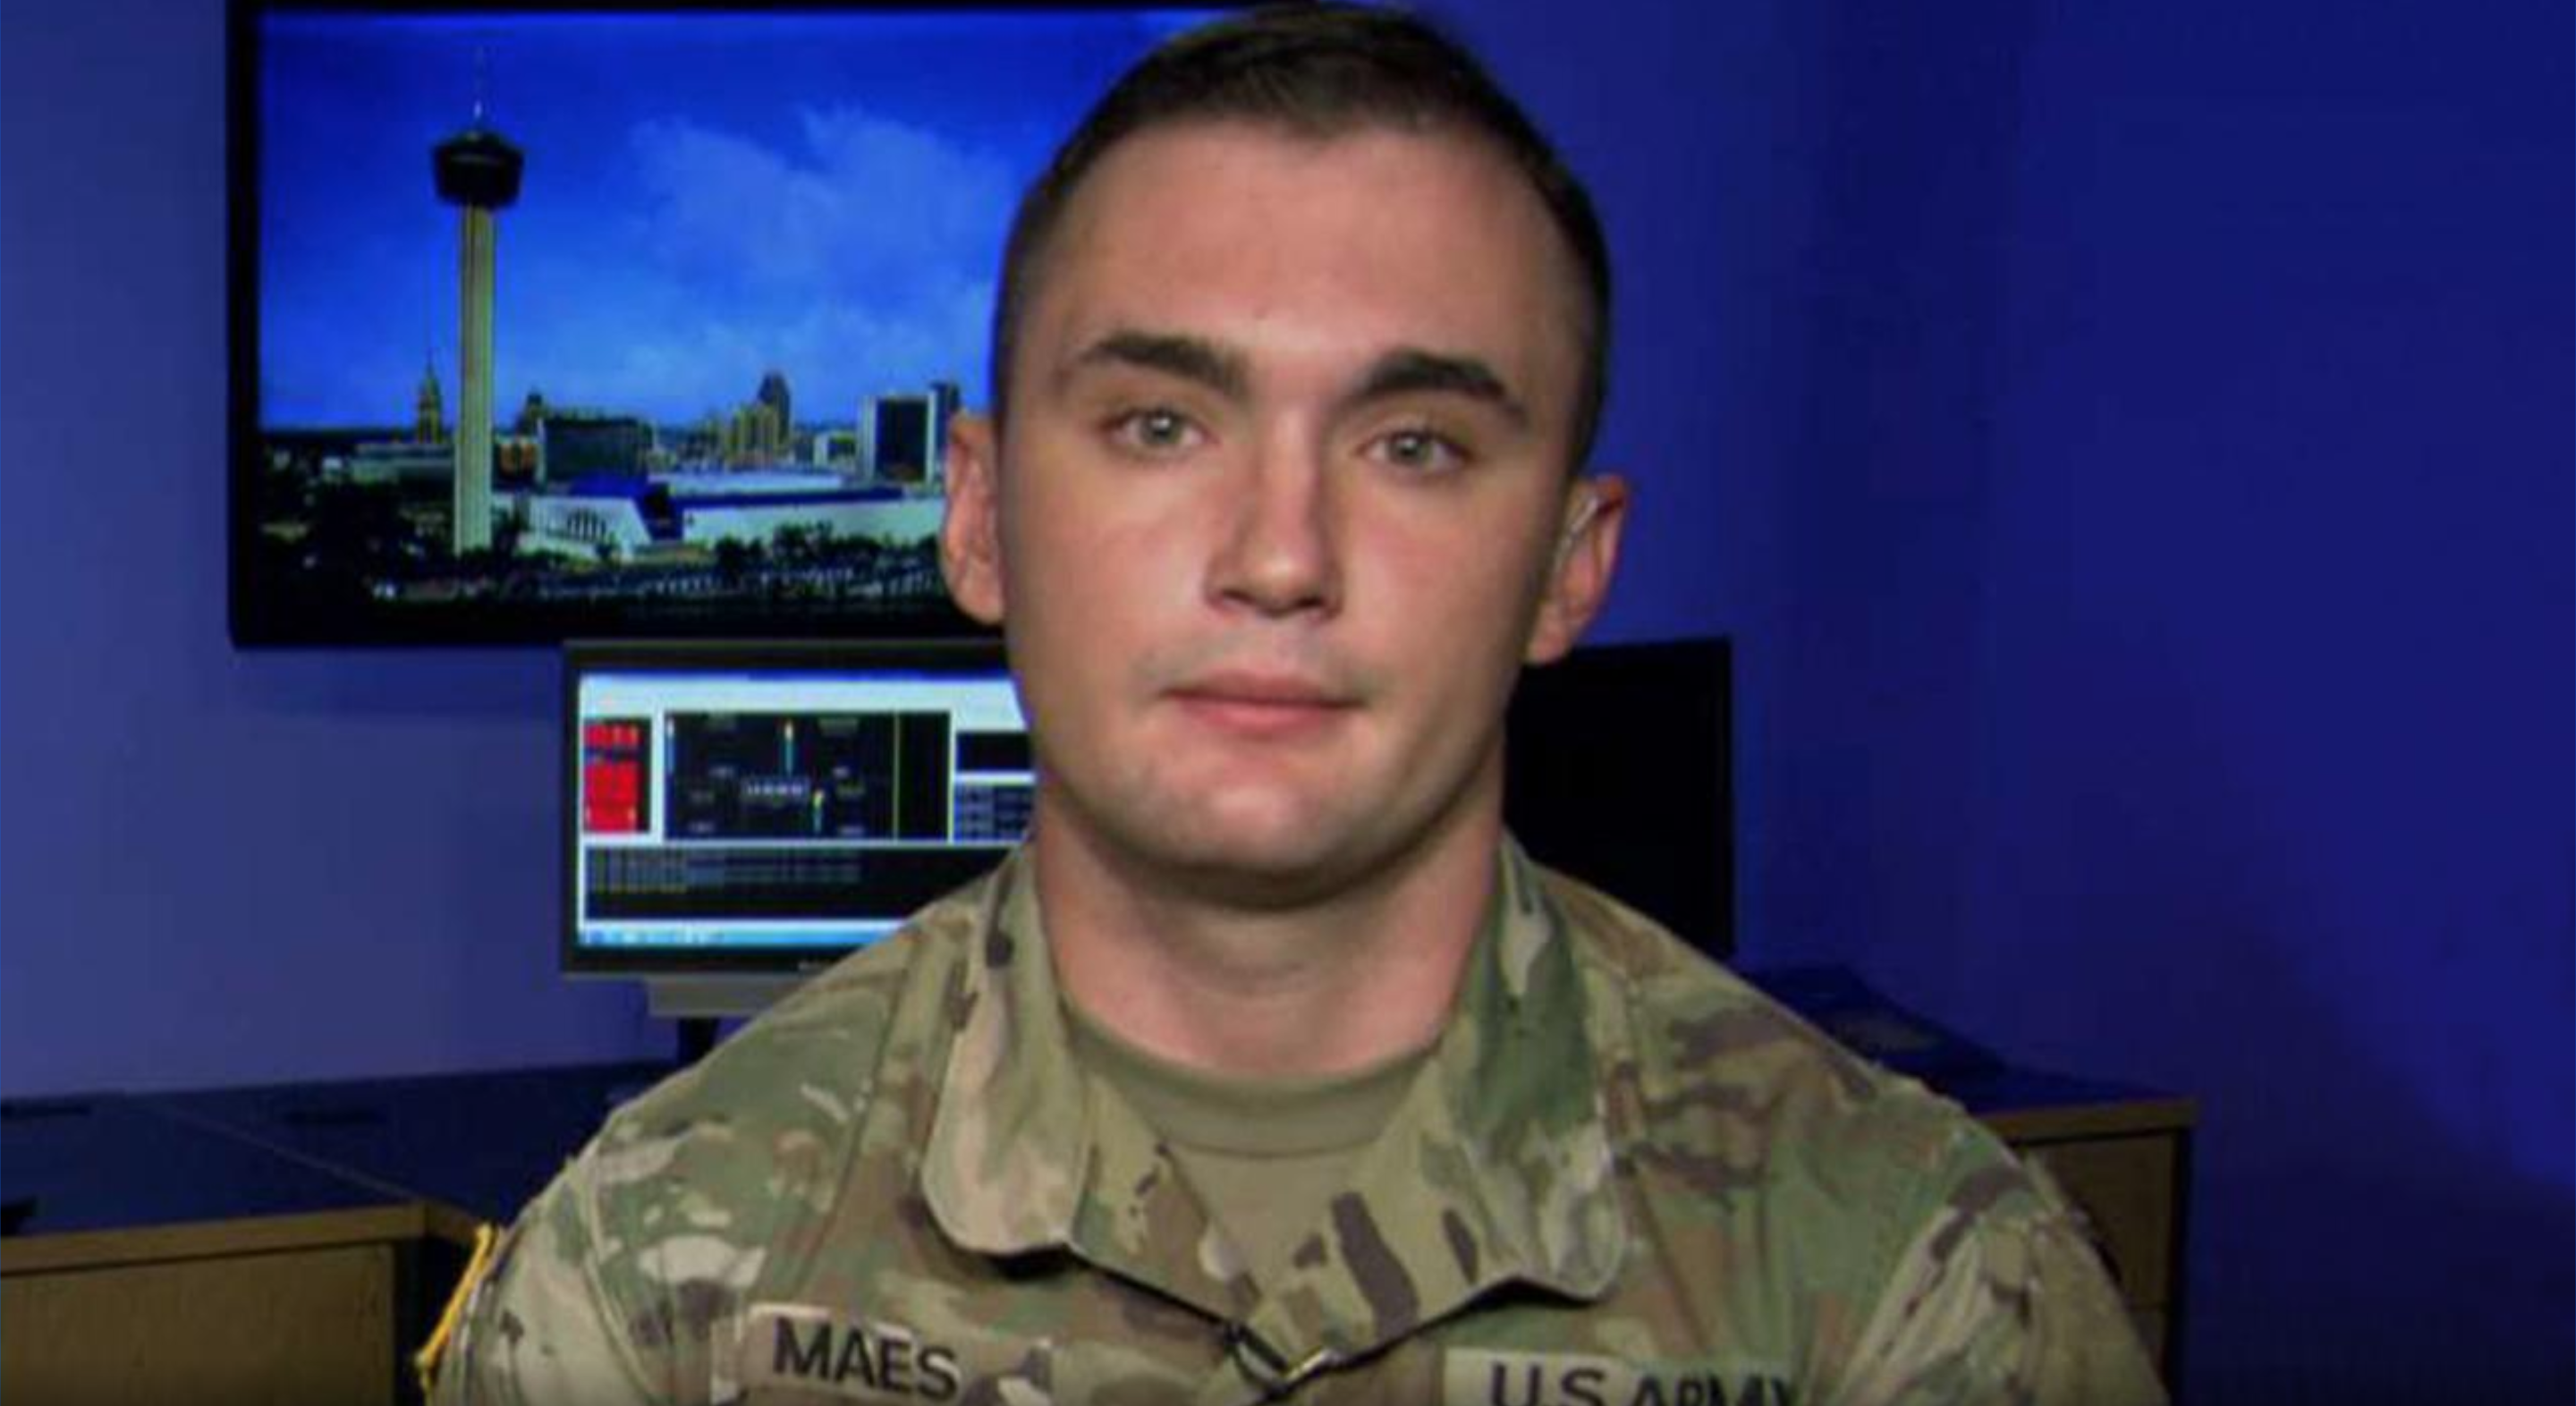 Westlake Legal Group Screen-Shot-2019-10-29-at-9.57.28-AM US soldier who severed his own leg to help his crewmates gives first TV interview Joshua Nelson fox-news/shows/fox-friends fox-news/media/fox-news-flash fox news fnc/media fnc ec54848d-5dce-51a9-8505-7a02b84543c6 article